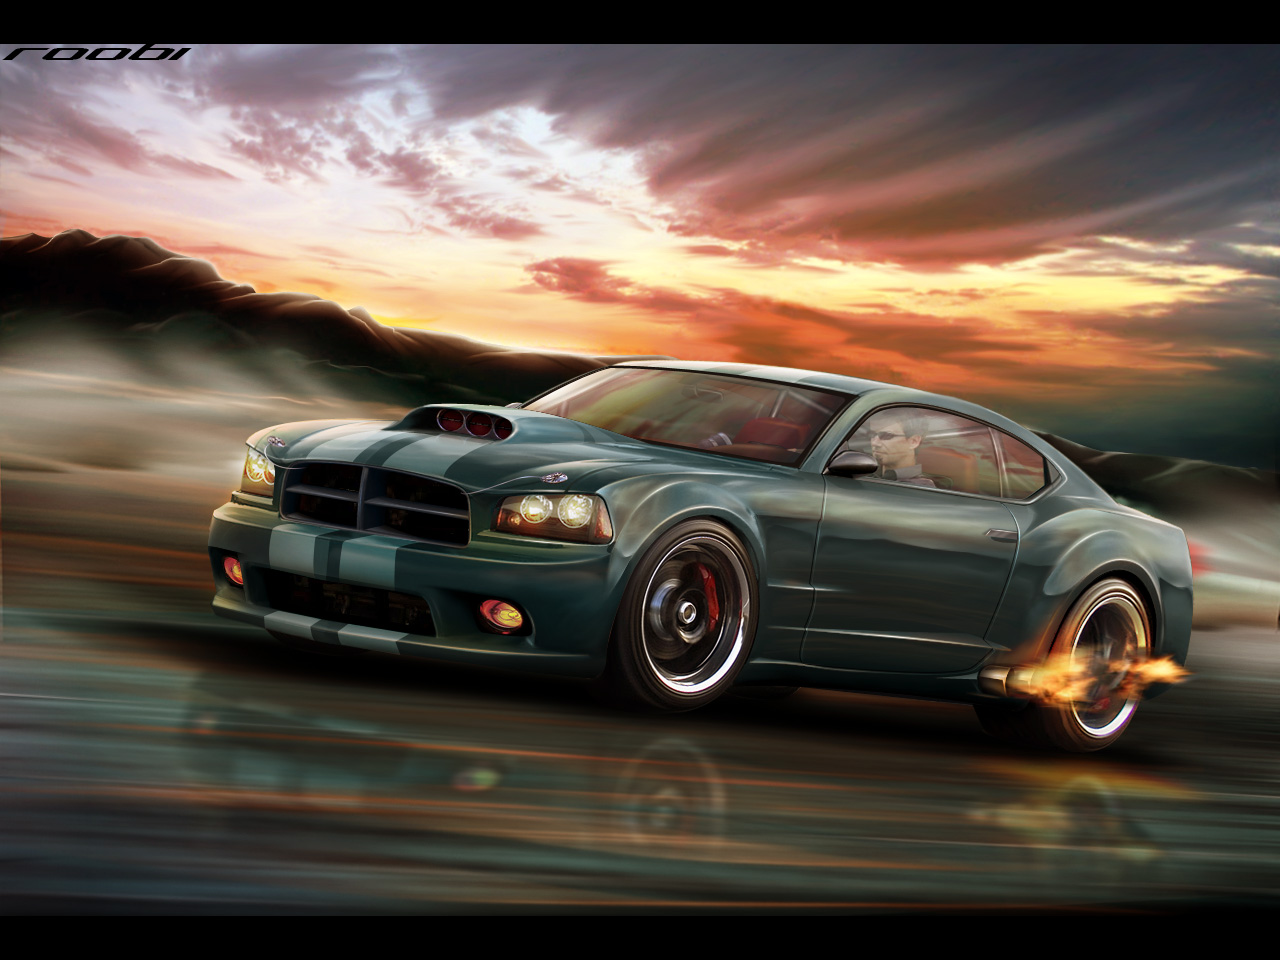 Dodge Charger - huge collection of cars, auto news and reviews, car vitals,